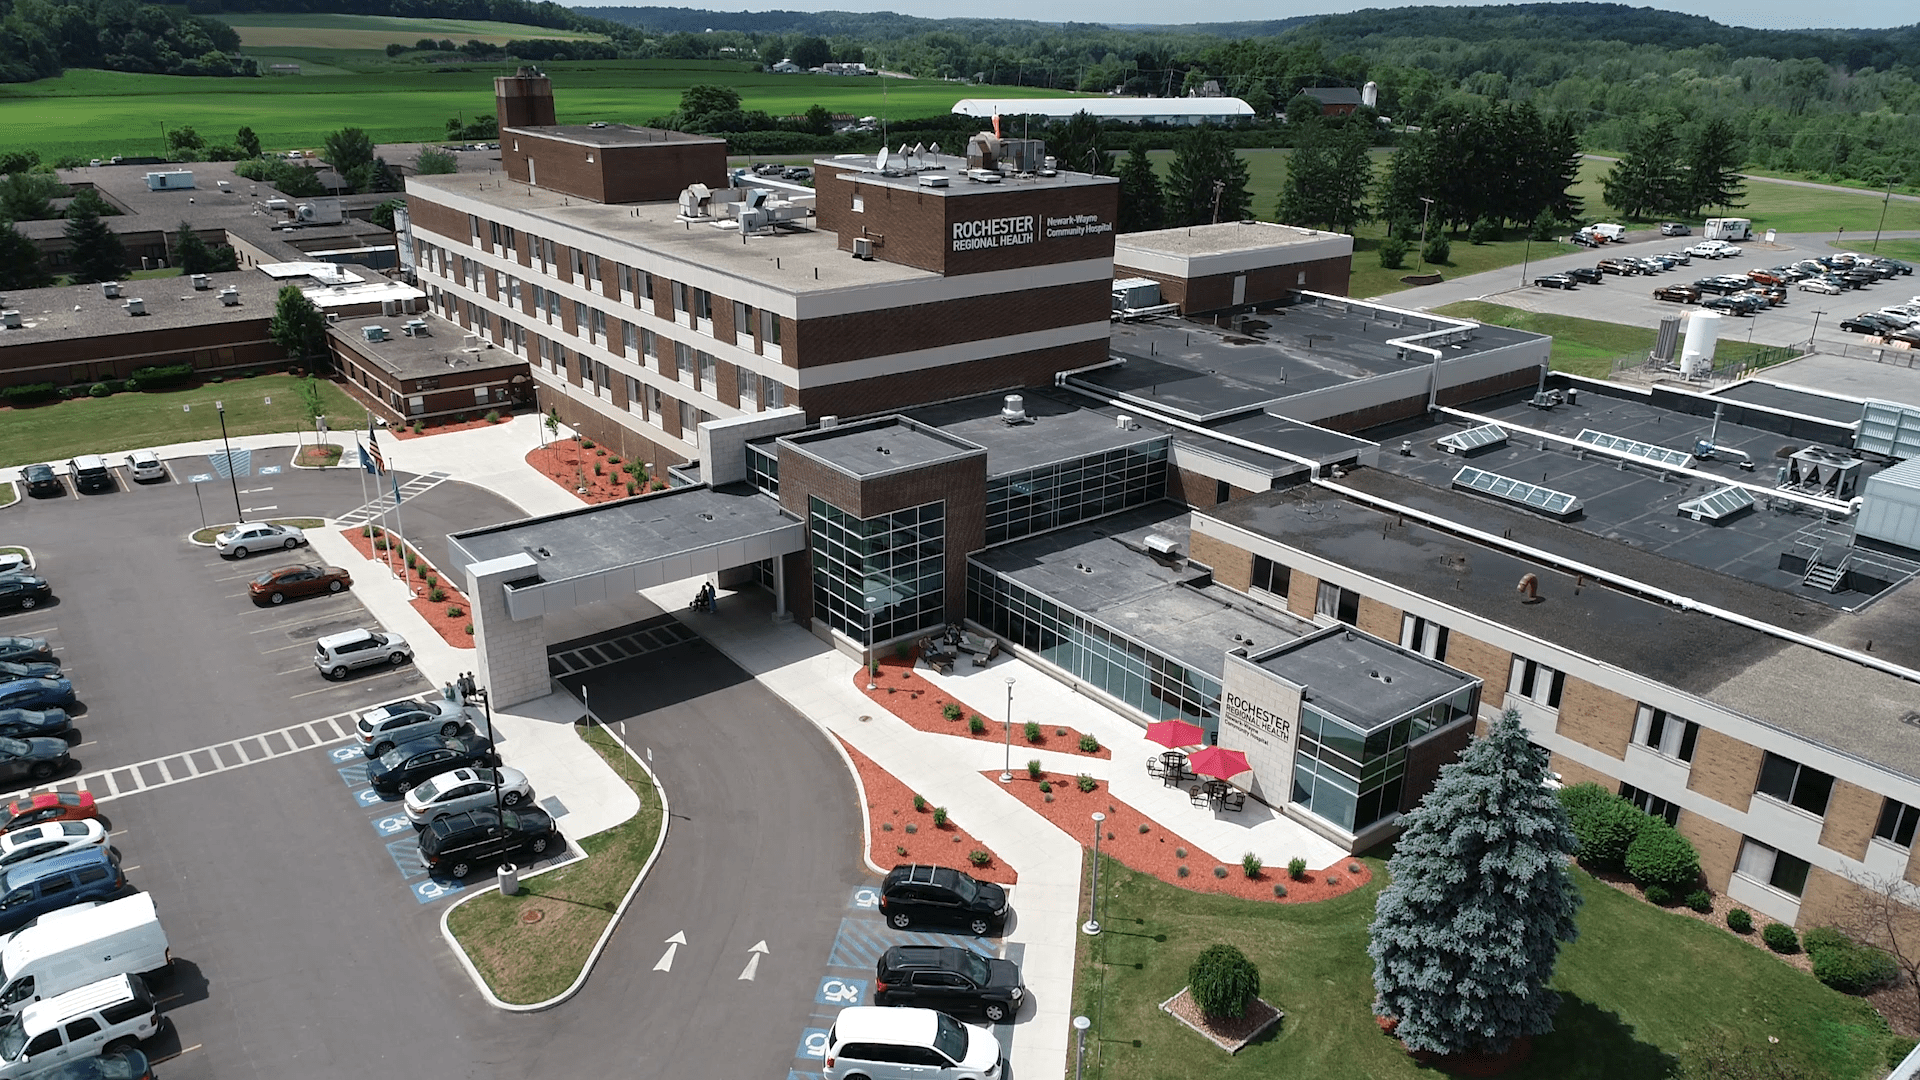 Newark-Wayne Community Hospital restricting visitation as COVID-19 cases rise